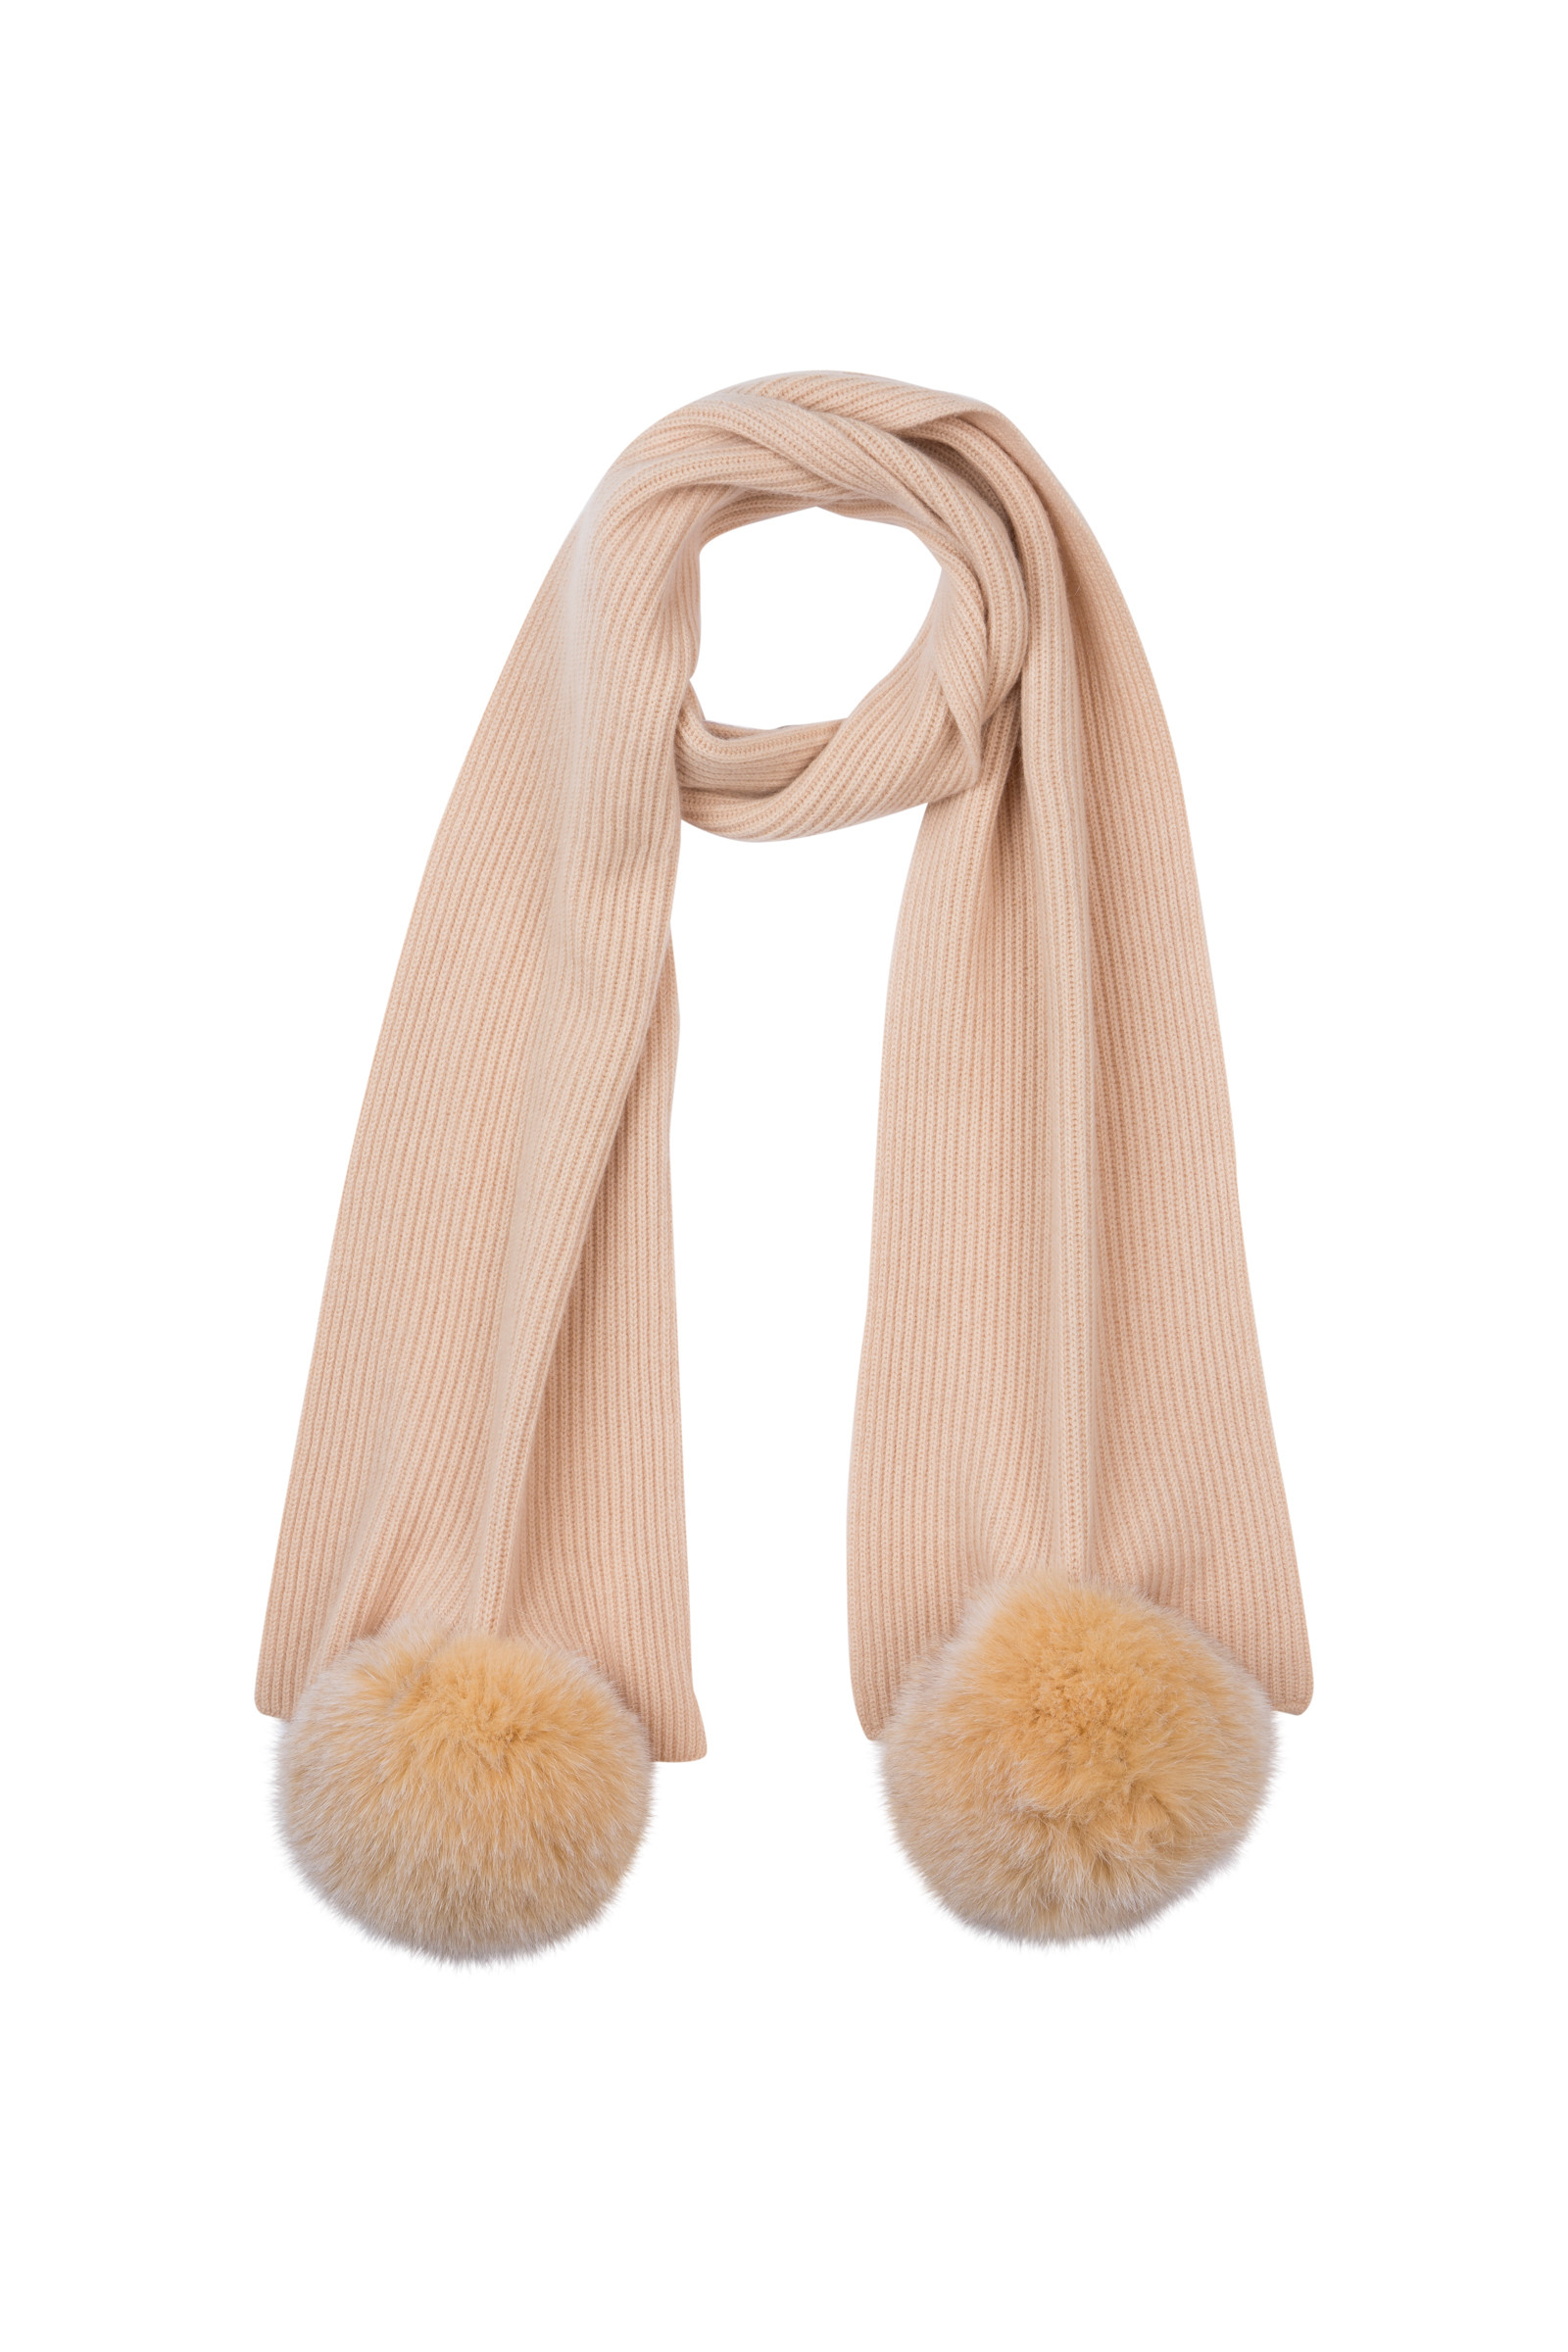 ALANO RIBBED KNIT SCARF WITH POMPOMS NUTS